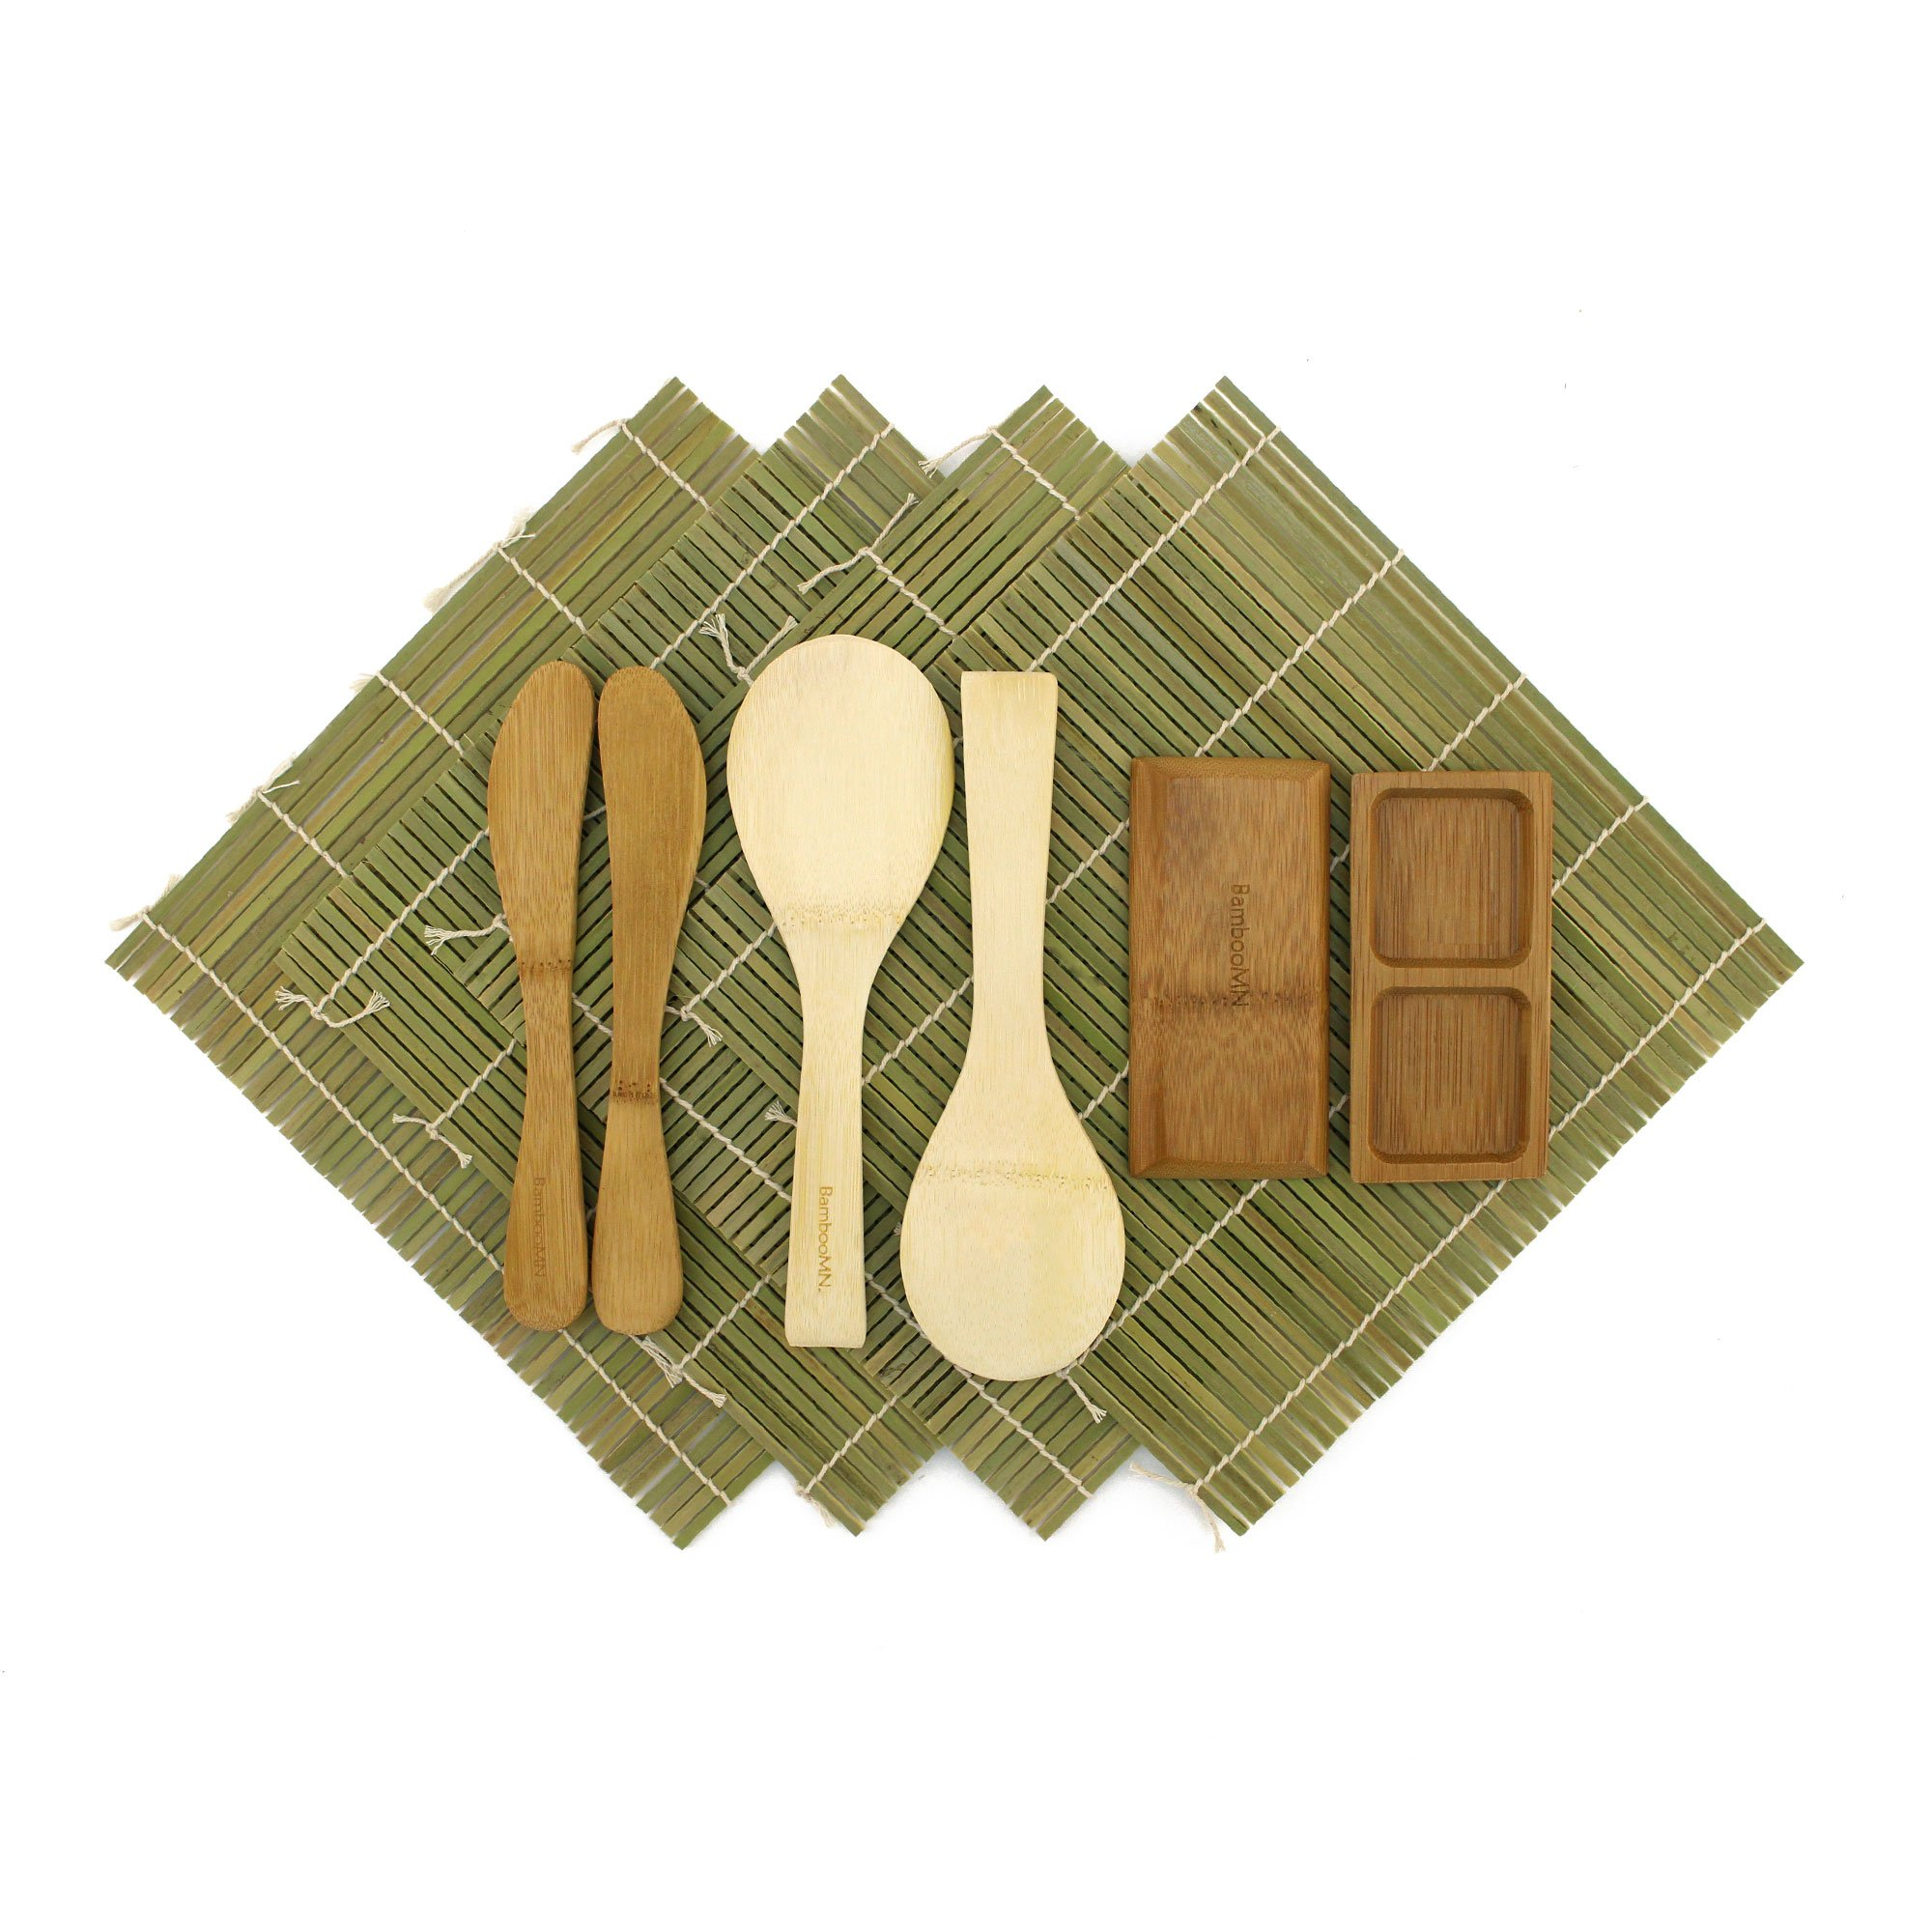 BambooMN Deluxe Sushi Making Kit 2 SETS of 2x Green Bamboo Rolling Mats, 1x Rice Paddle, 1x Spreader, 1 Compartment Sauce Dish | 100% Bamboo Sushi Mats and Utensils